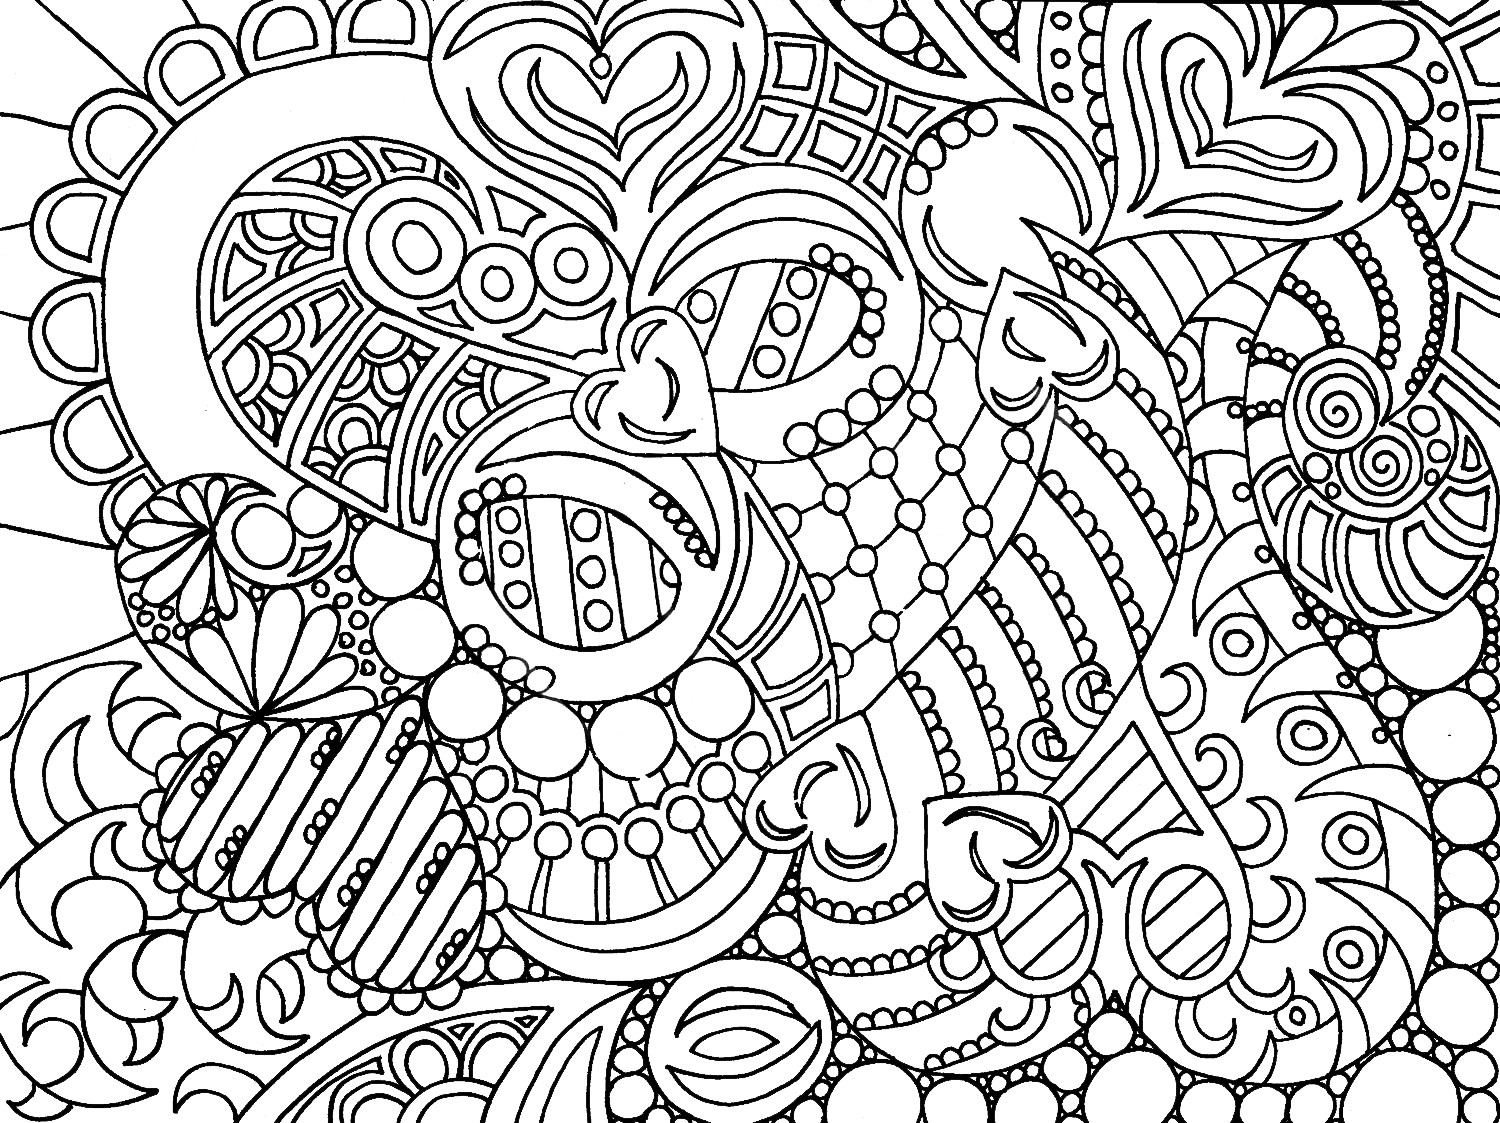 Free Printable Coloring Sheets Adults  free coloring pages for adults